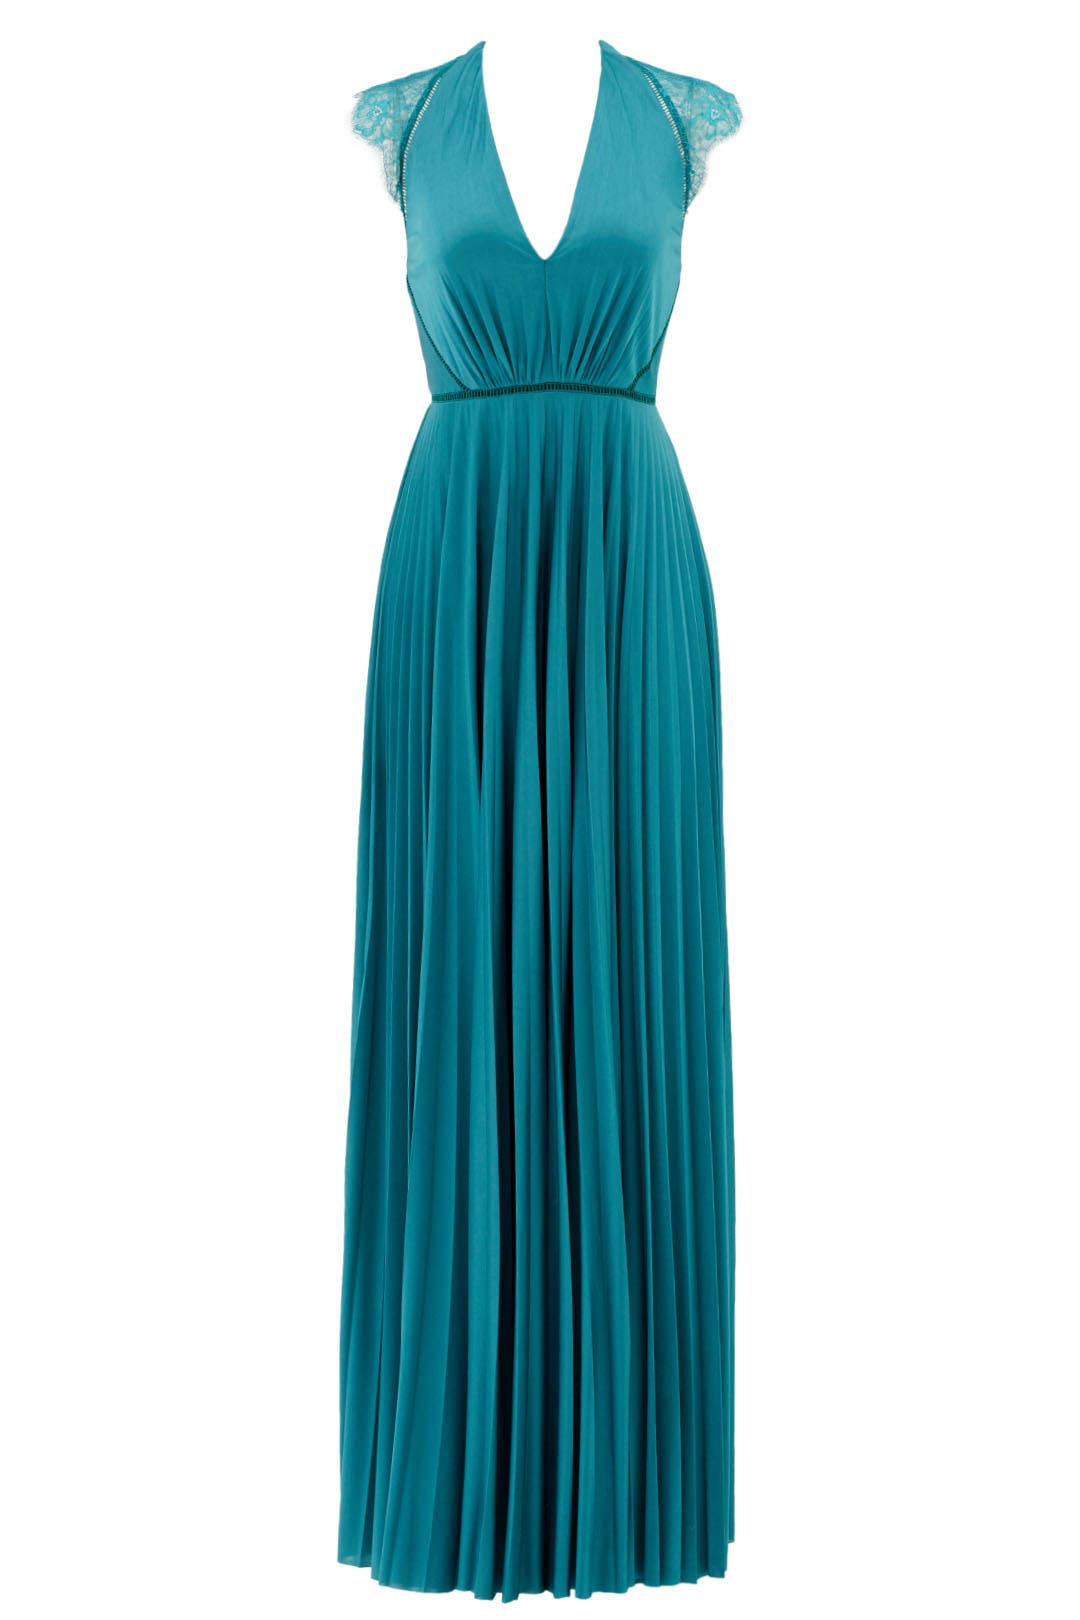 Aqua Elouise Gown by CATHERINE DEANE for $130 | Rent the Runway